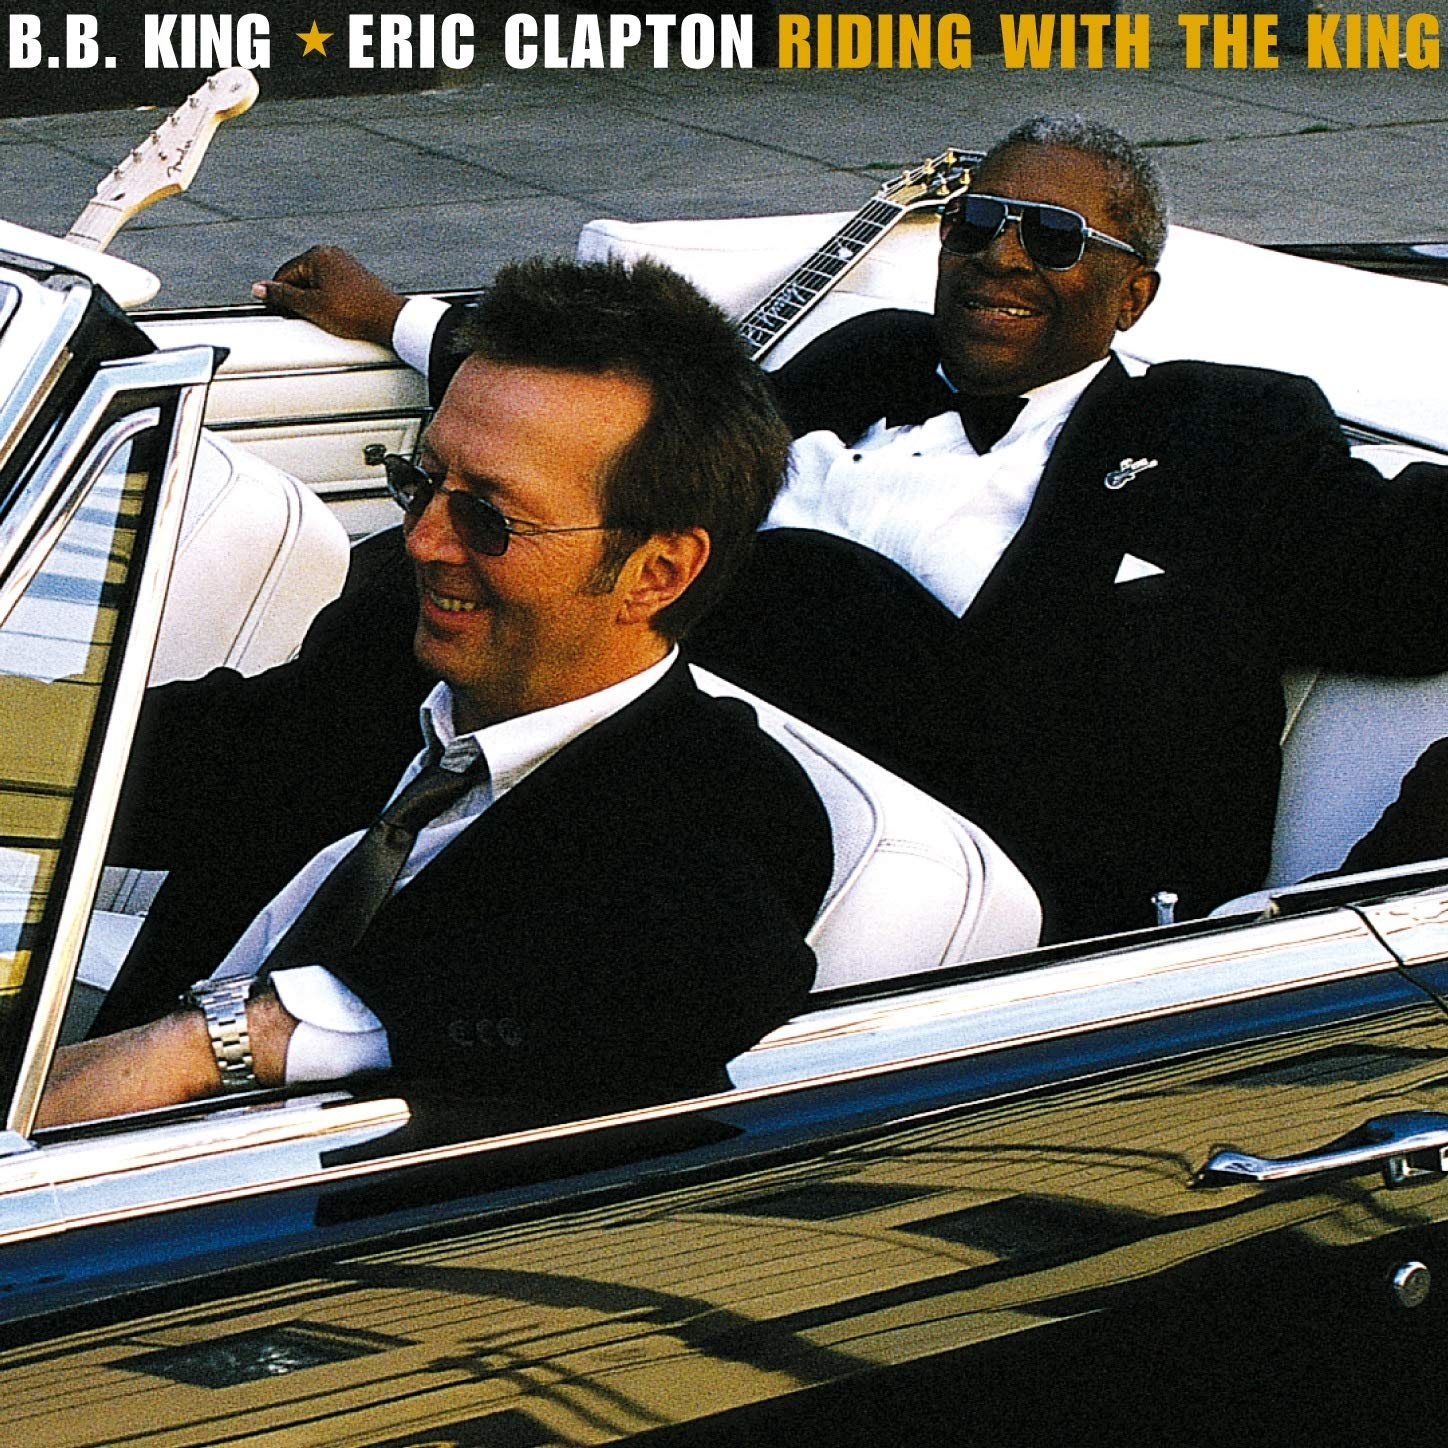 Riding with the King - Eric Clapton & B.B. King - Musik - Reprise - 0093624895213 - 26/6-2020